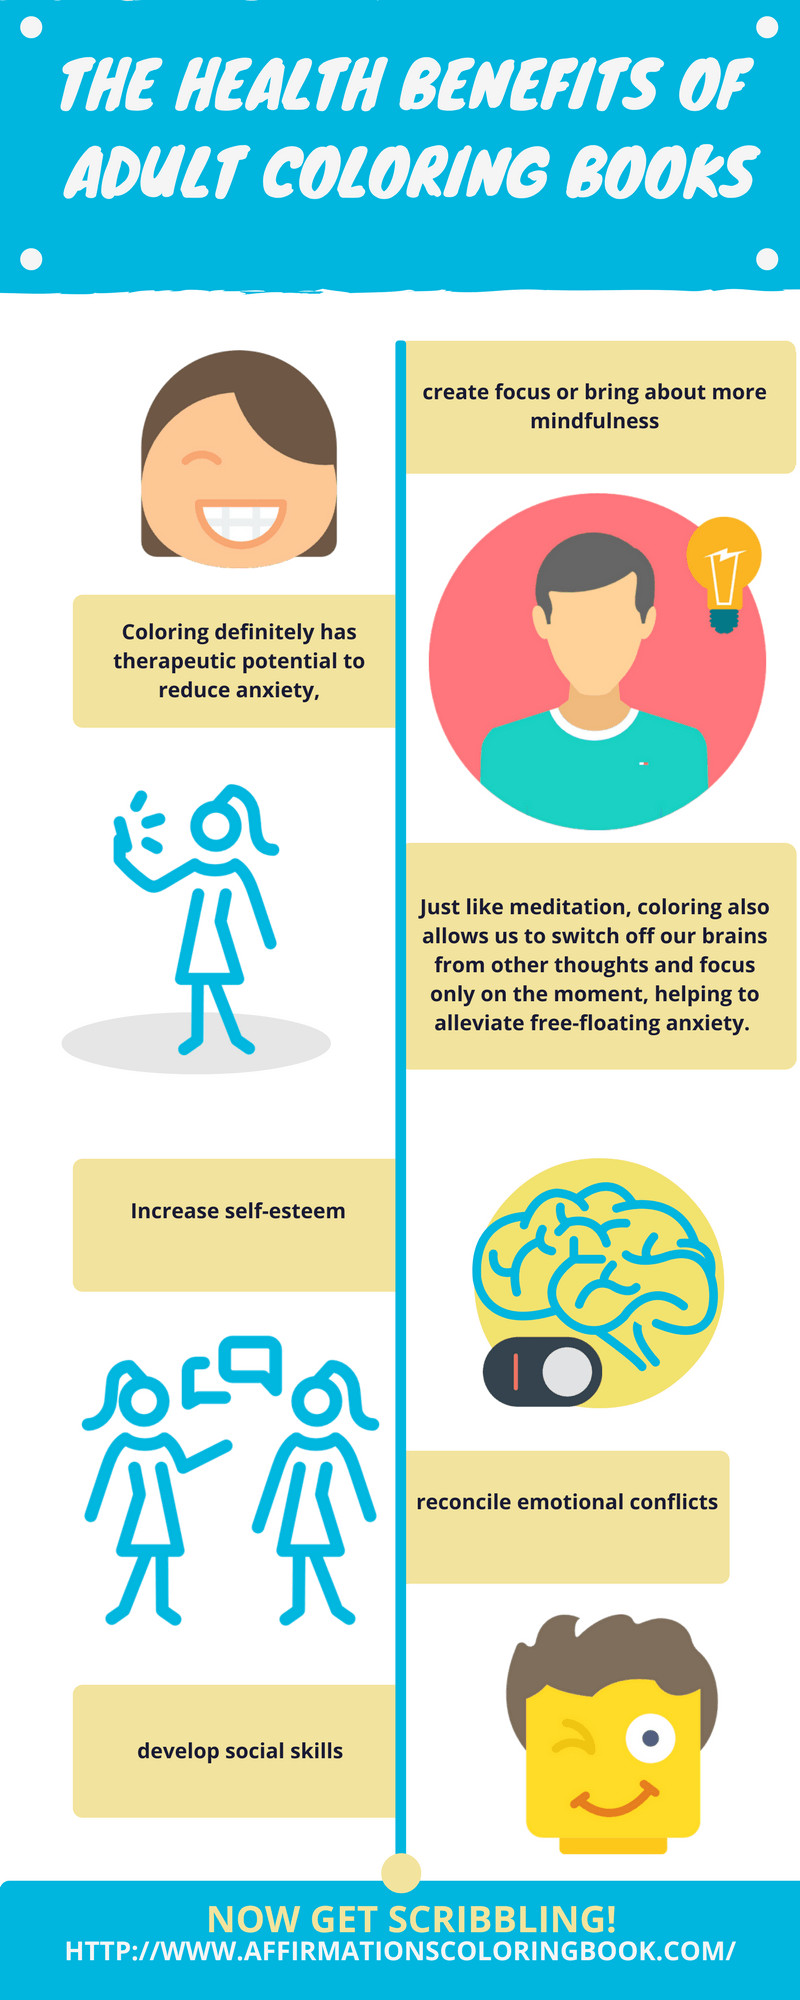 Best ideas about Adult Coloring Books Benefits . Save or Pin The Health Benefits of Adult Coloring Books Infographic Now.